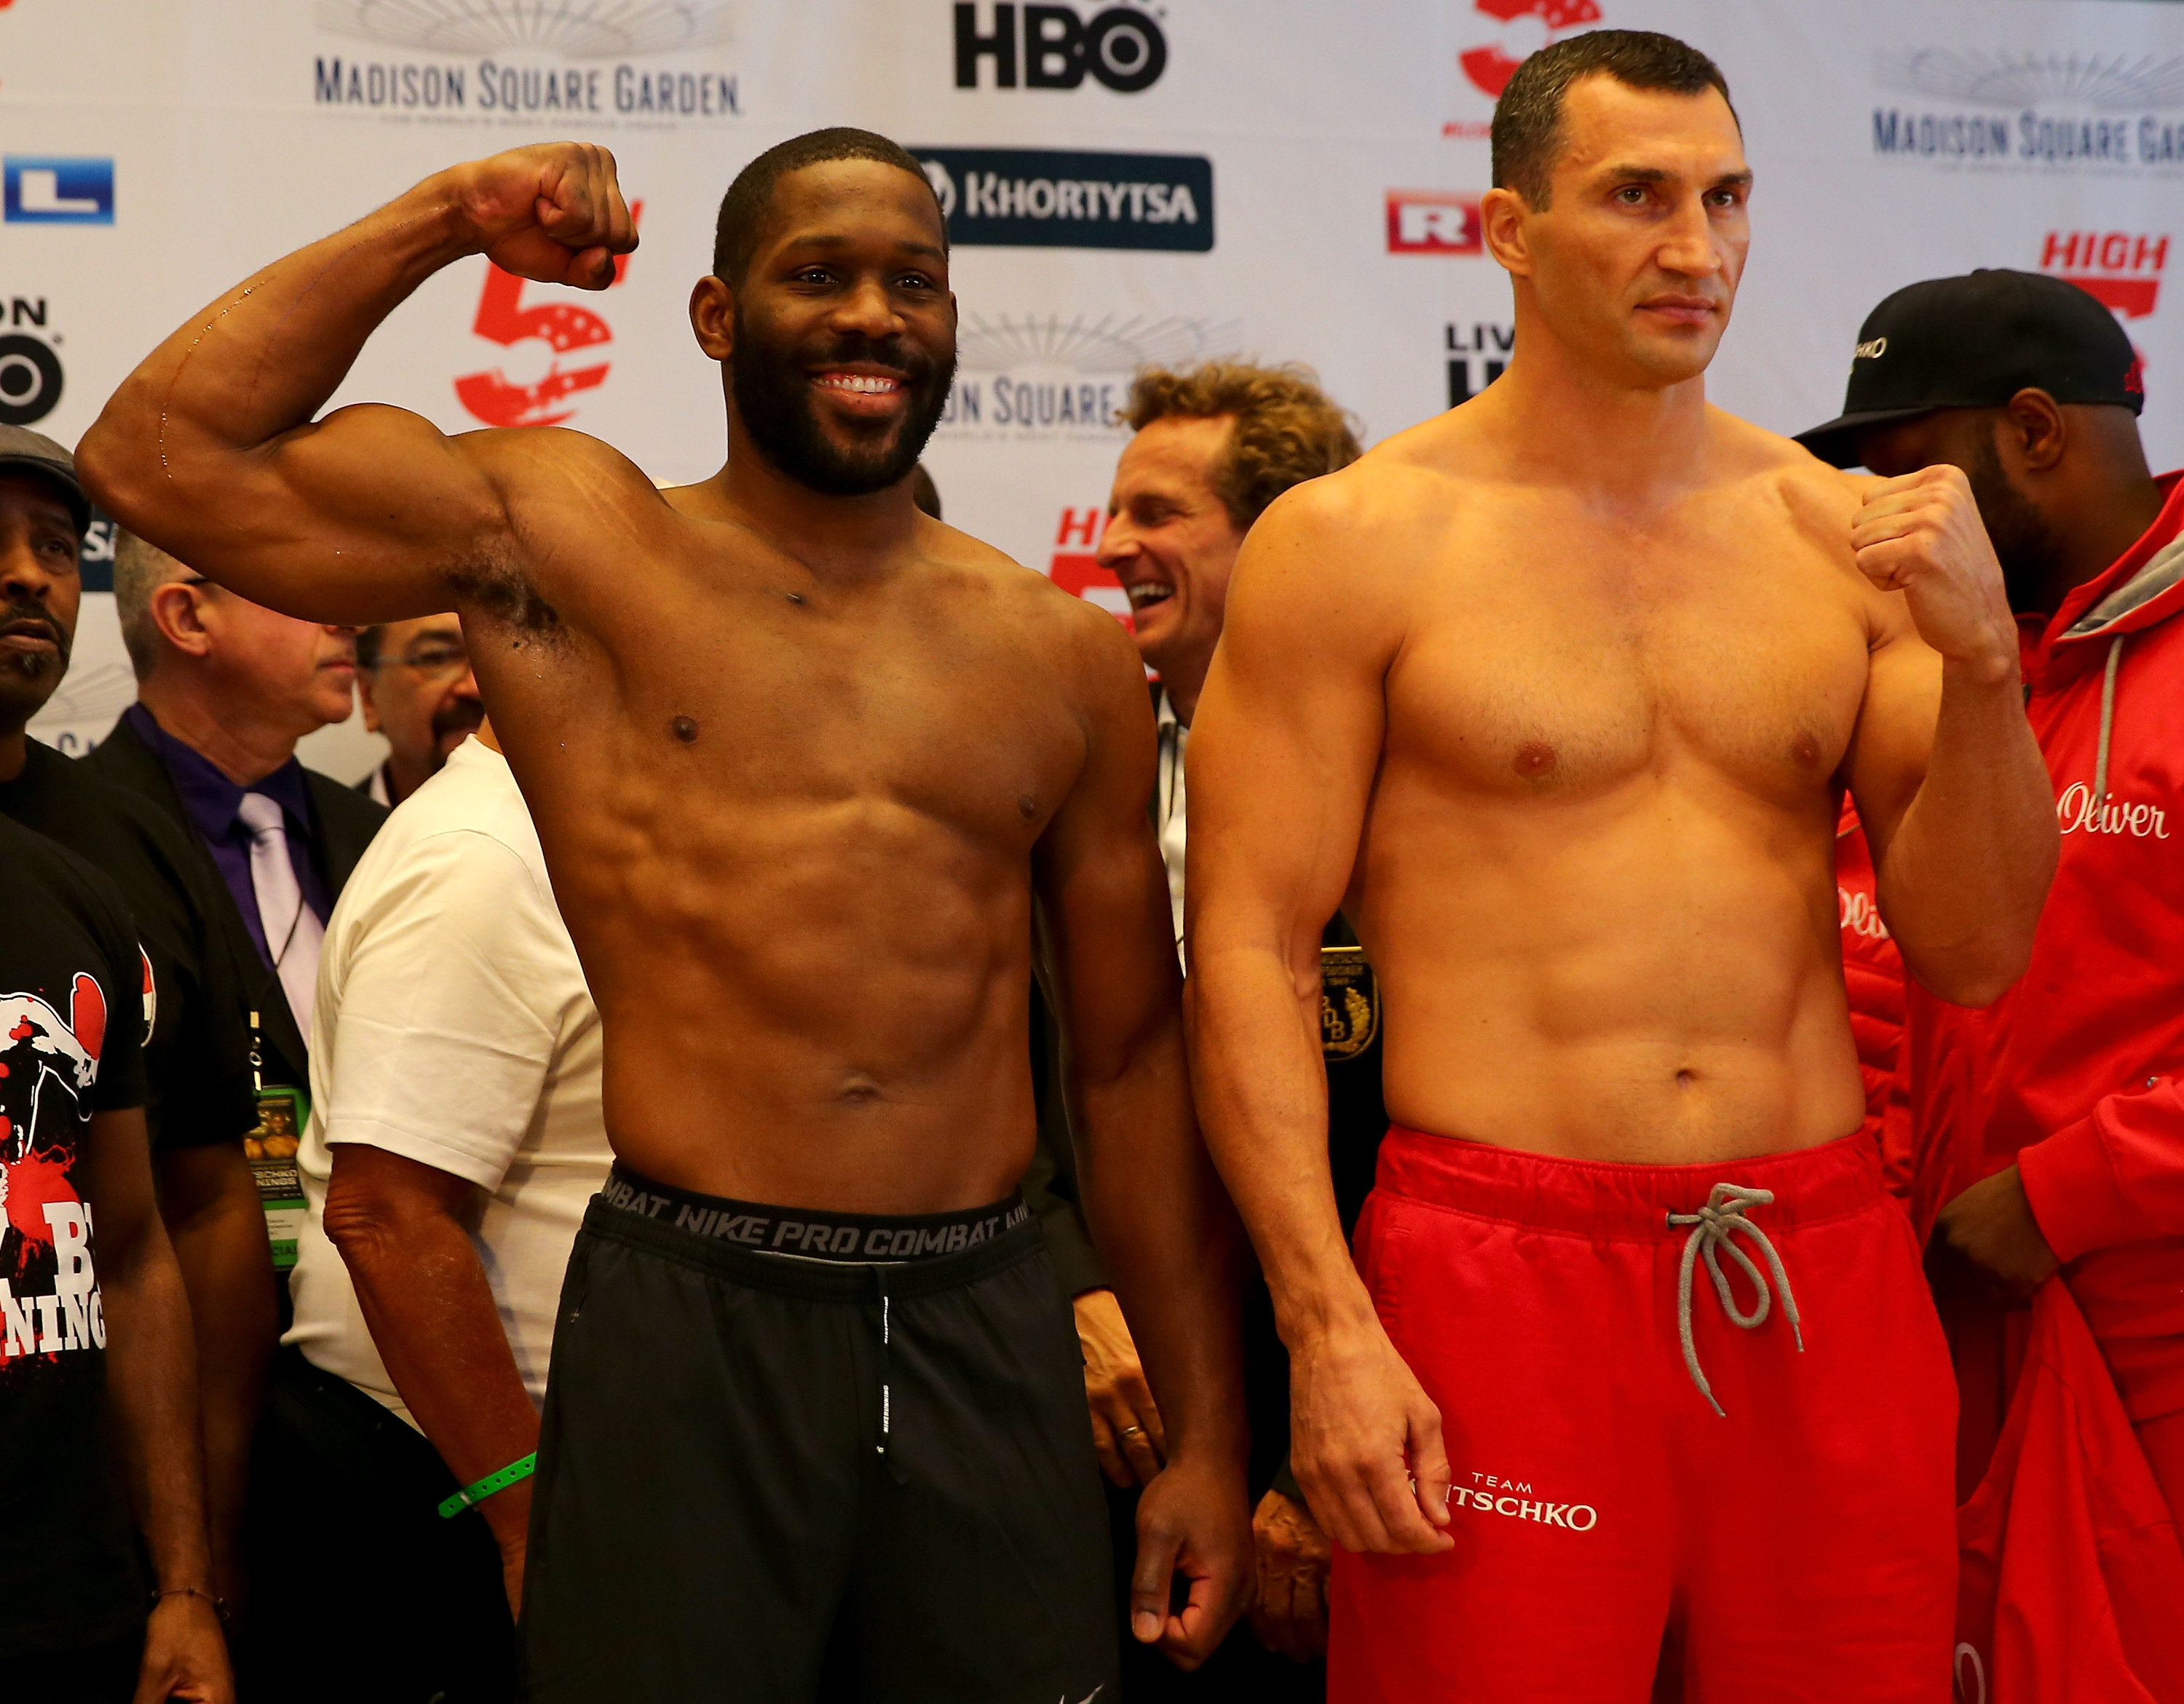 NEW YORK, NY - APRIL 24:  Bryant Jennings and Vladimir Klitschko face off after they both made weight during the weight in on April 24, 2015 at Madison Square Garden  in New York City.  (Photo by Elsa/Getty Images)